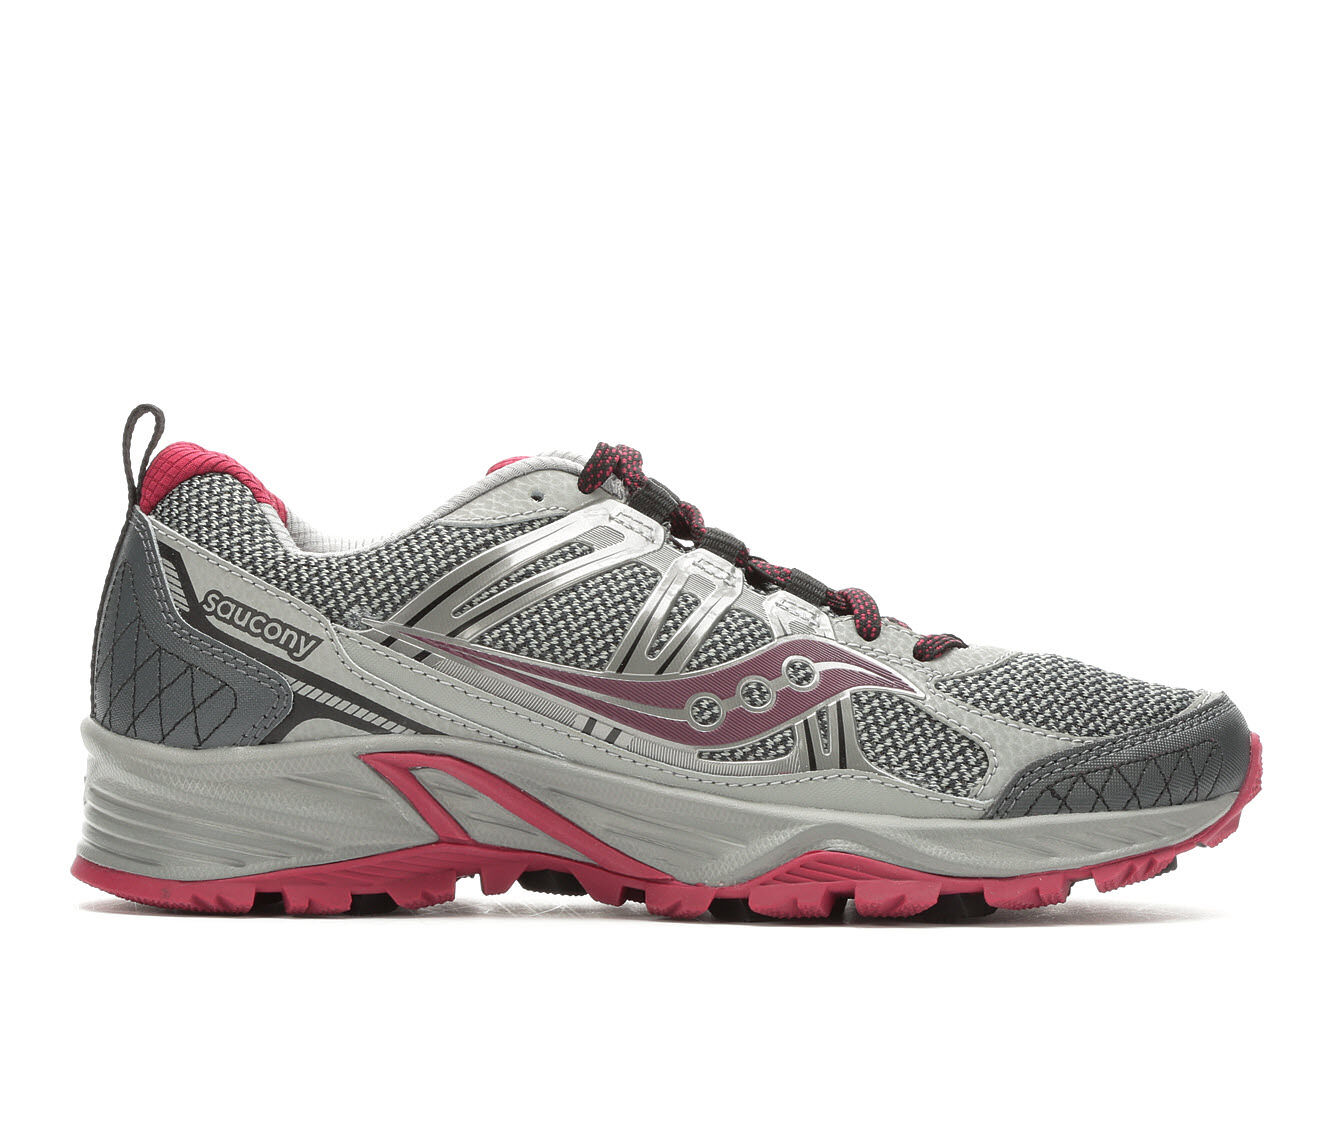 Women's Saucony Grid Eclipse TR 4 Trail Running Shoes Grey/Burgundy